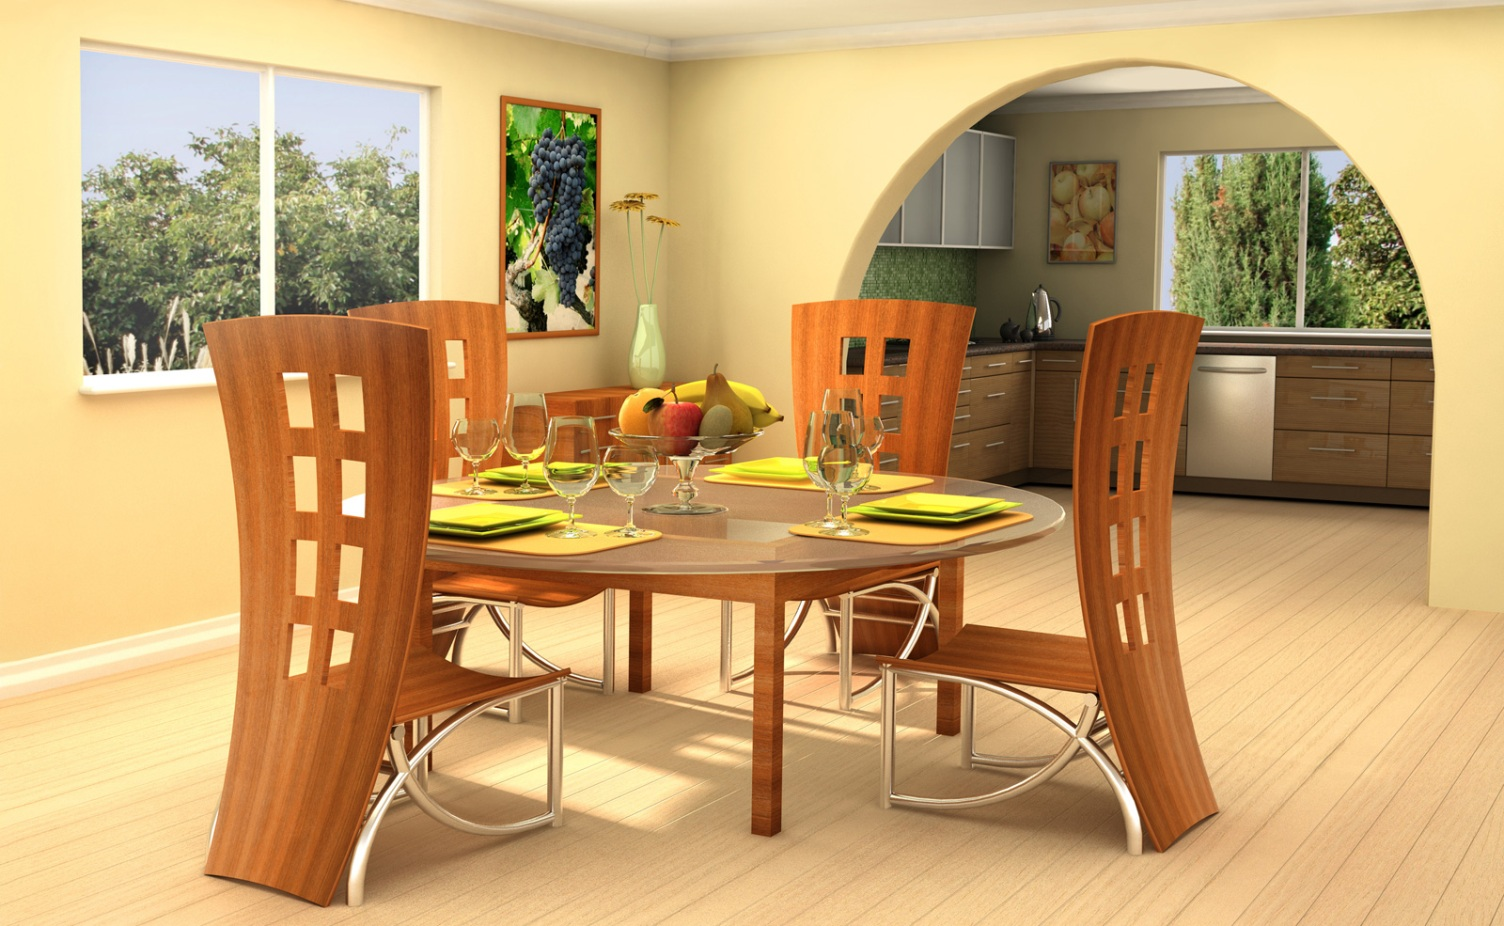 Go creative and pick unique dining room table and chairs for Fun dining room ideas